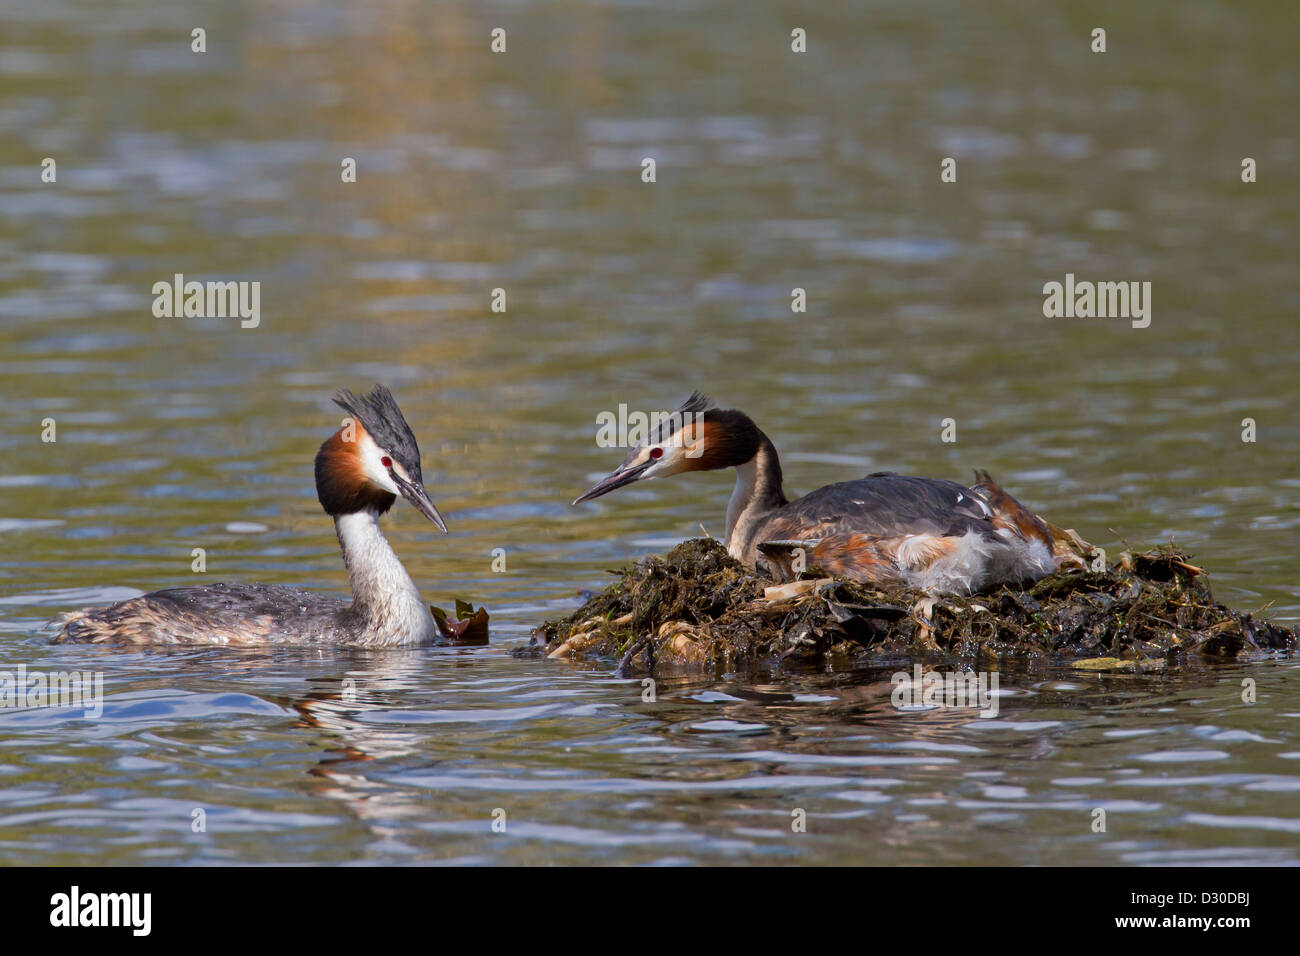 Great Crested Grebe (Podiceps cristatus) male visiting female breeding on nest in lake - Stock Image